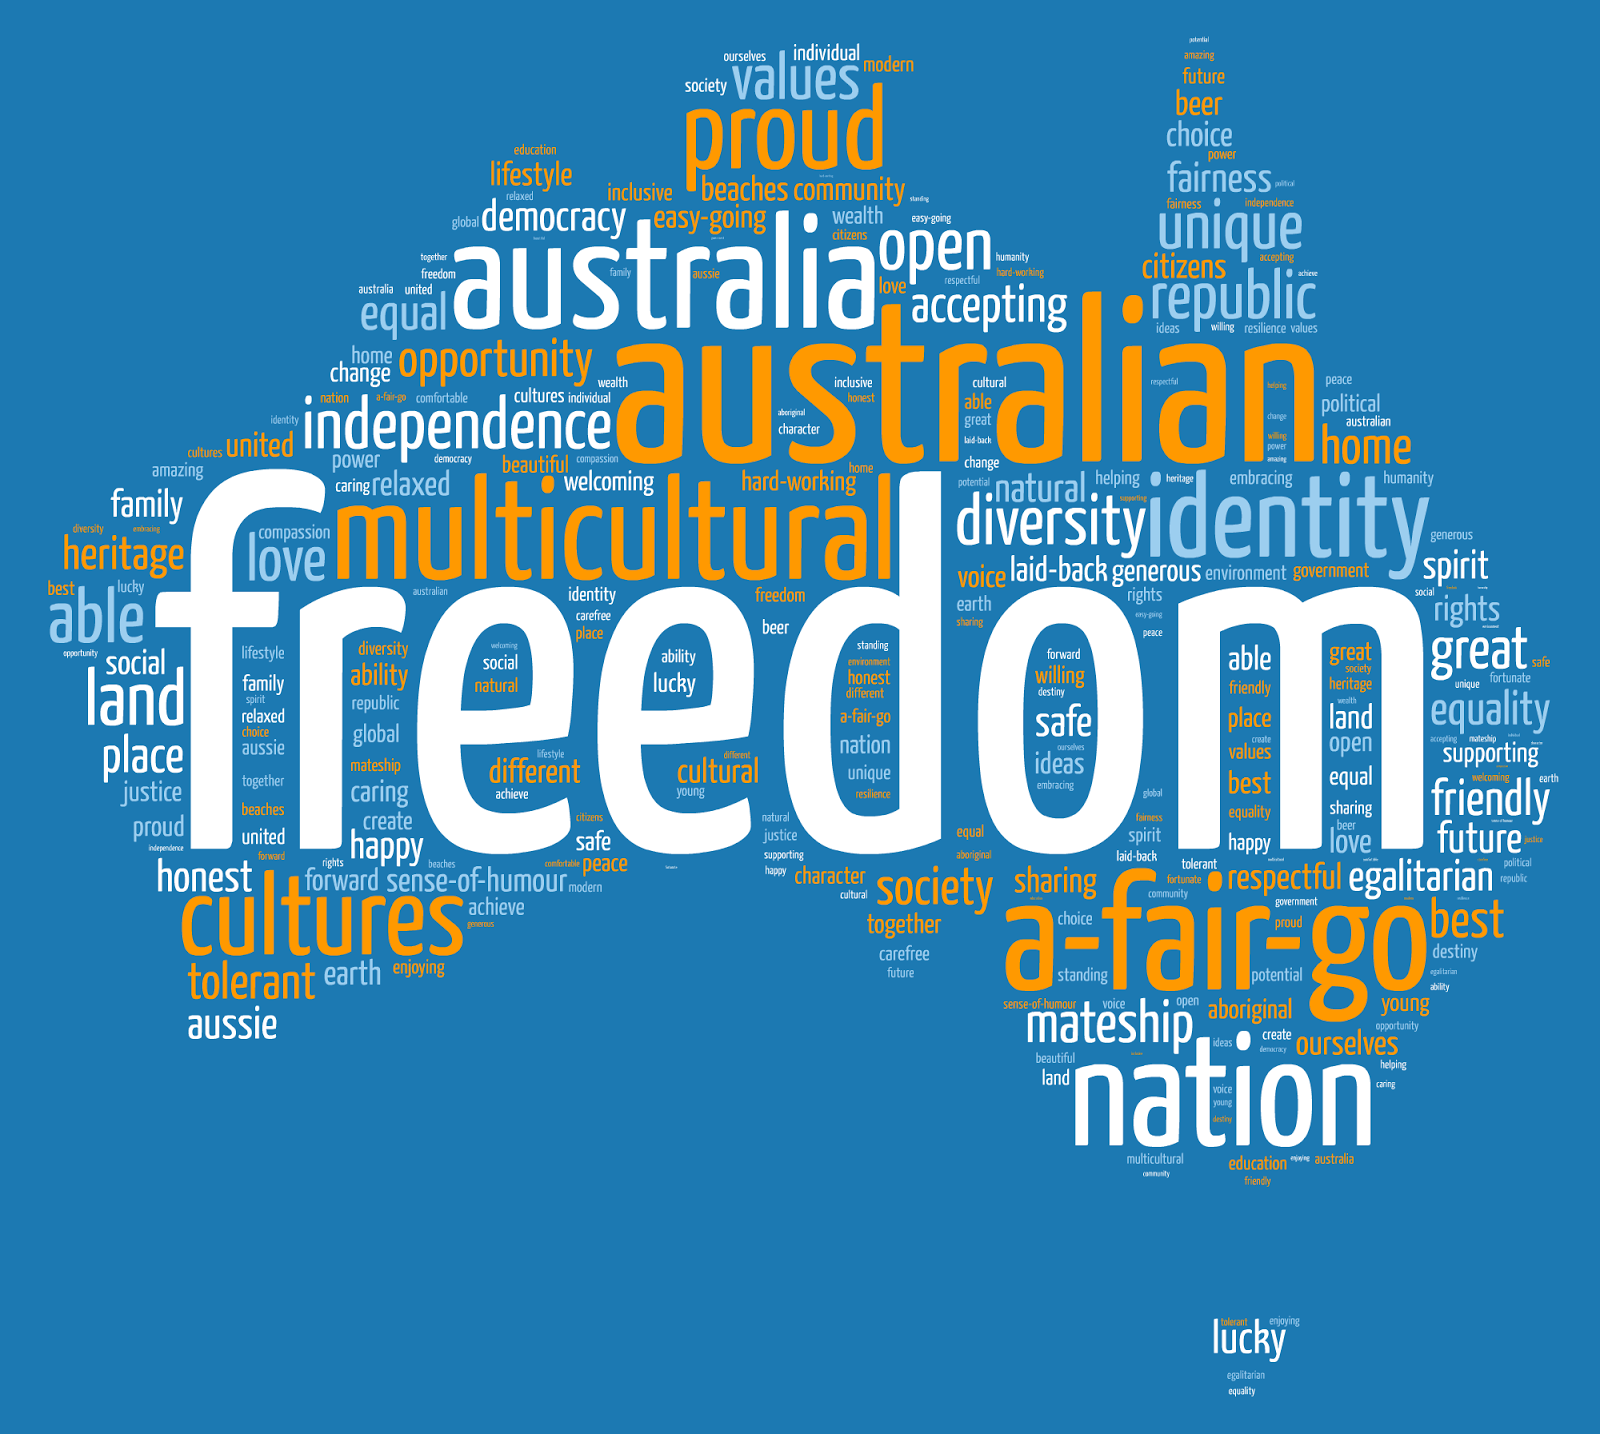 Is Australia A Democratic Country Reflections On The Australian Republic February 2014